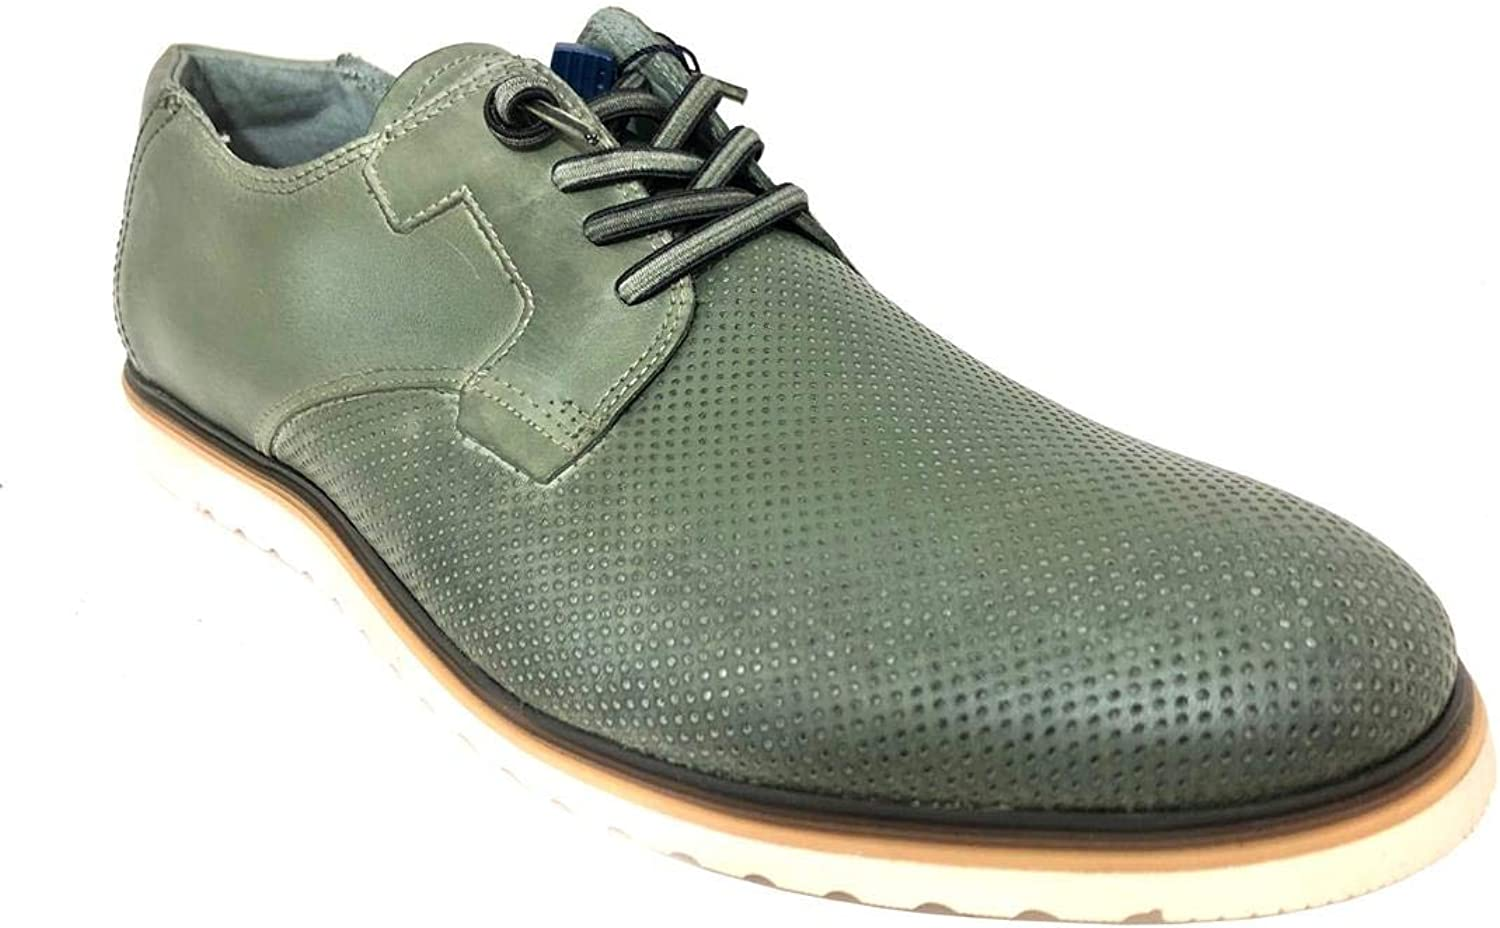 Cetti C1144, Leather Derby shoes for Men, Green